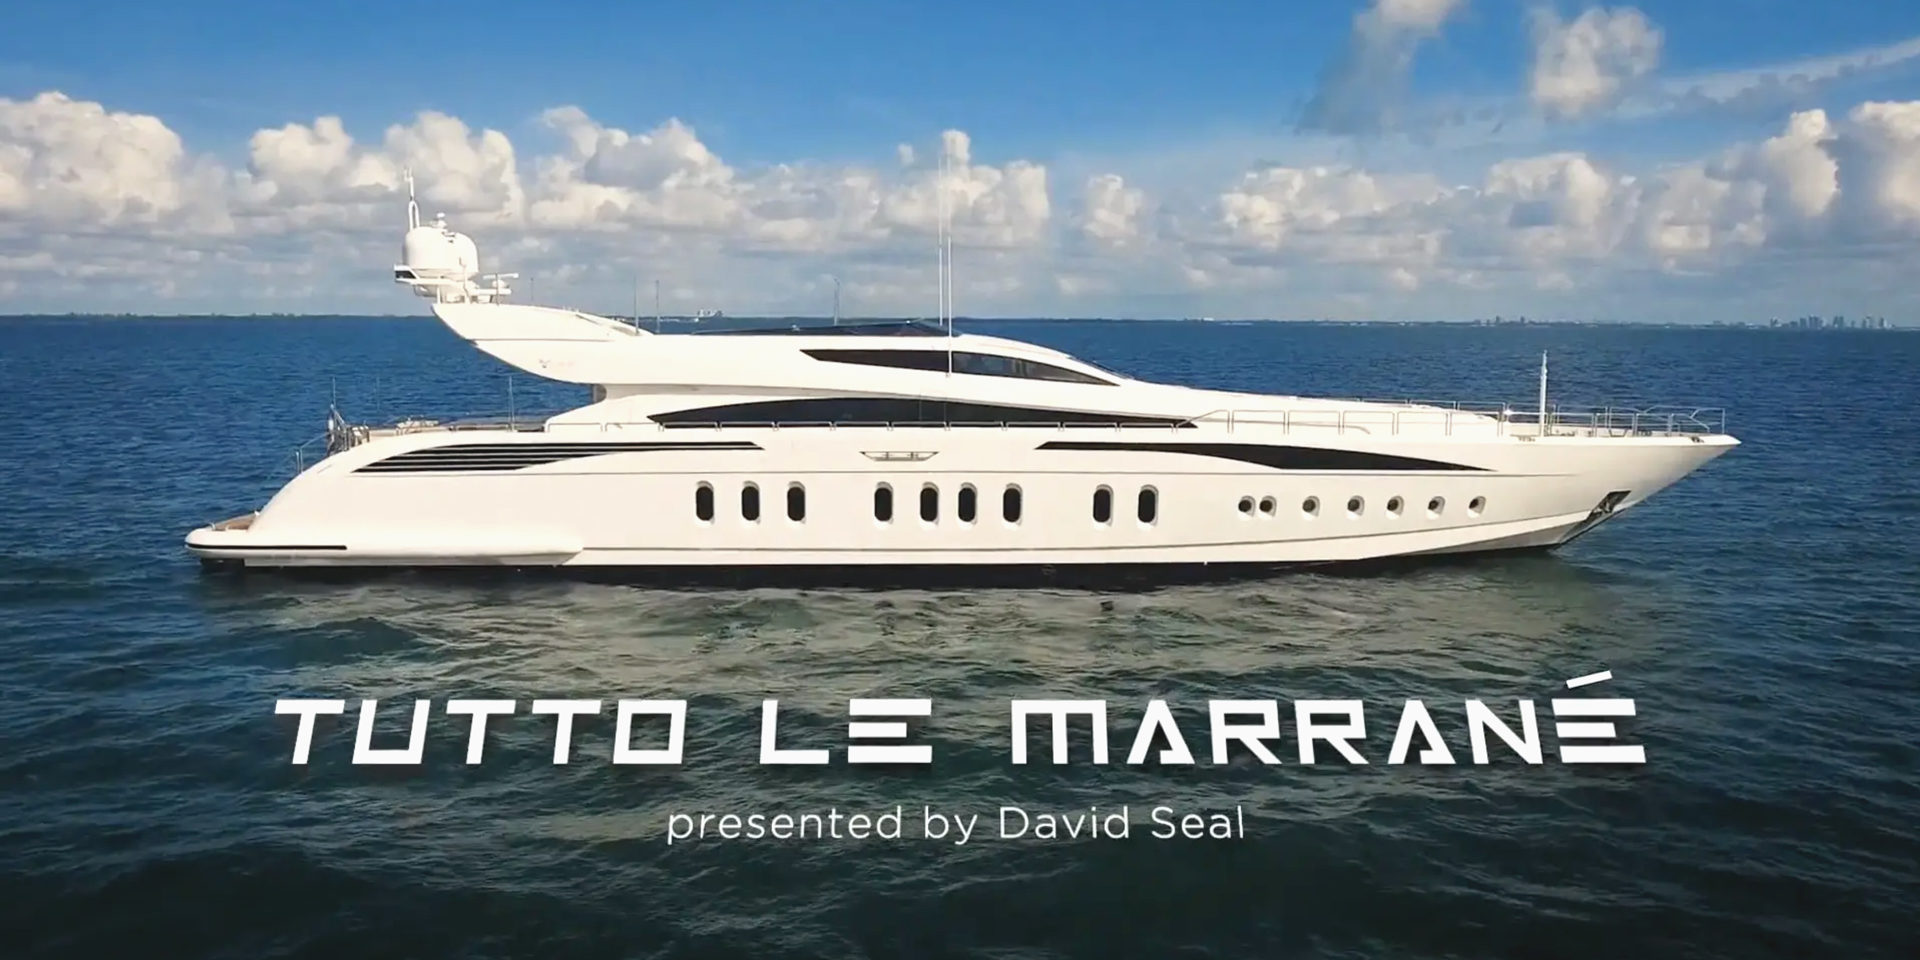 LEOPARD 46m 'TUTTO LE MARRANE' – SHORT DOCUMENTARY